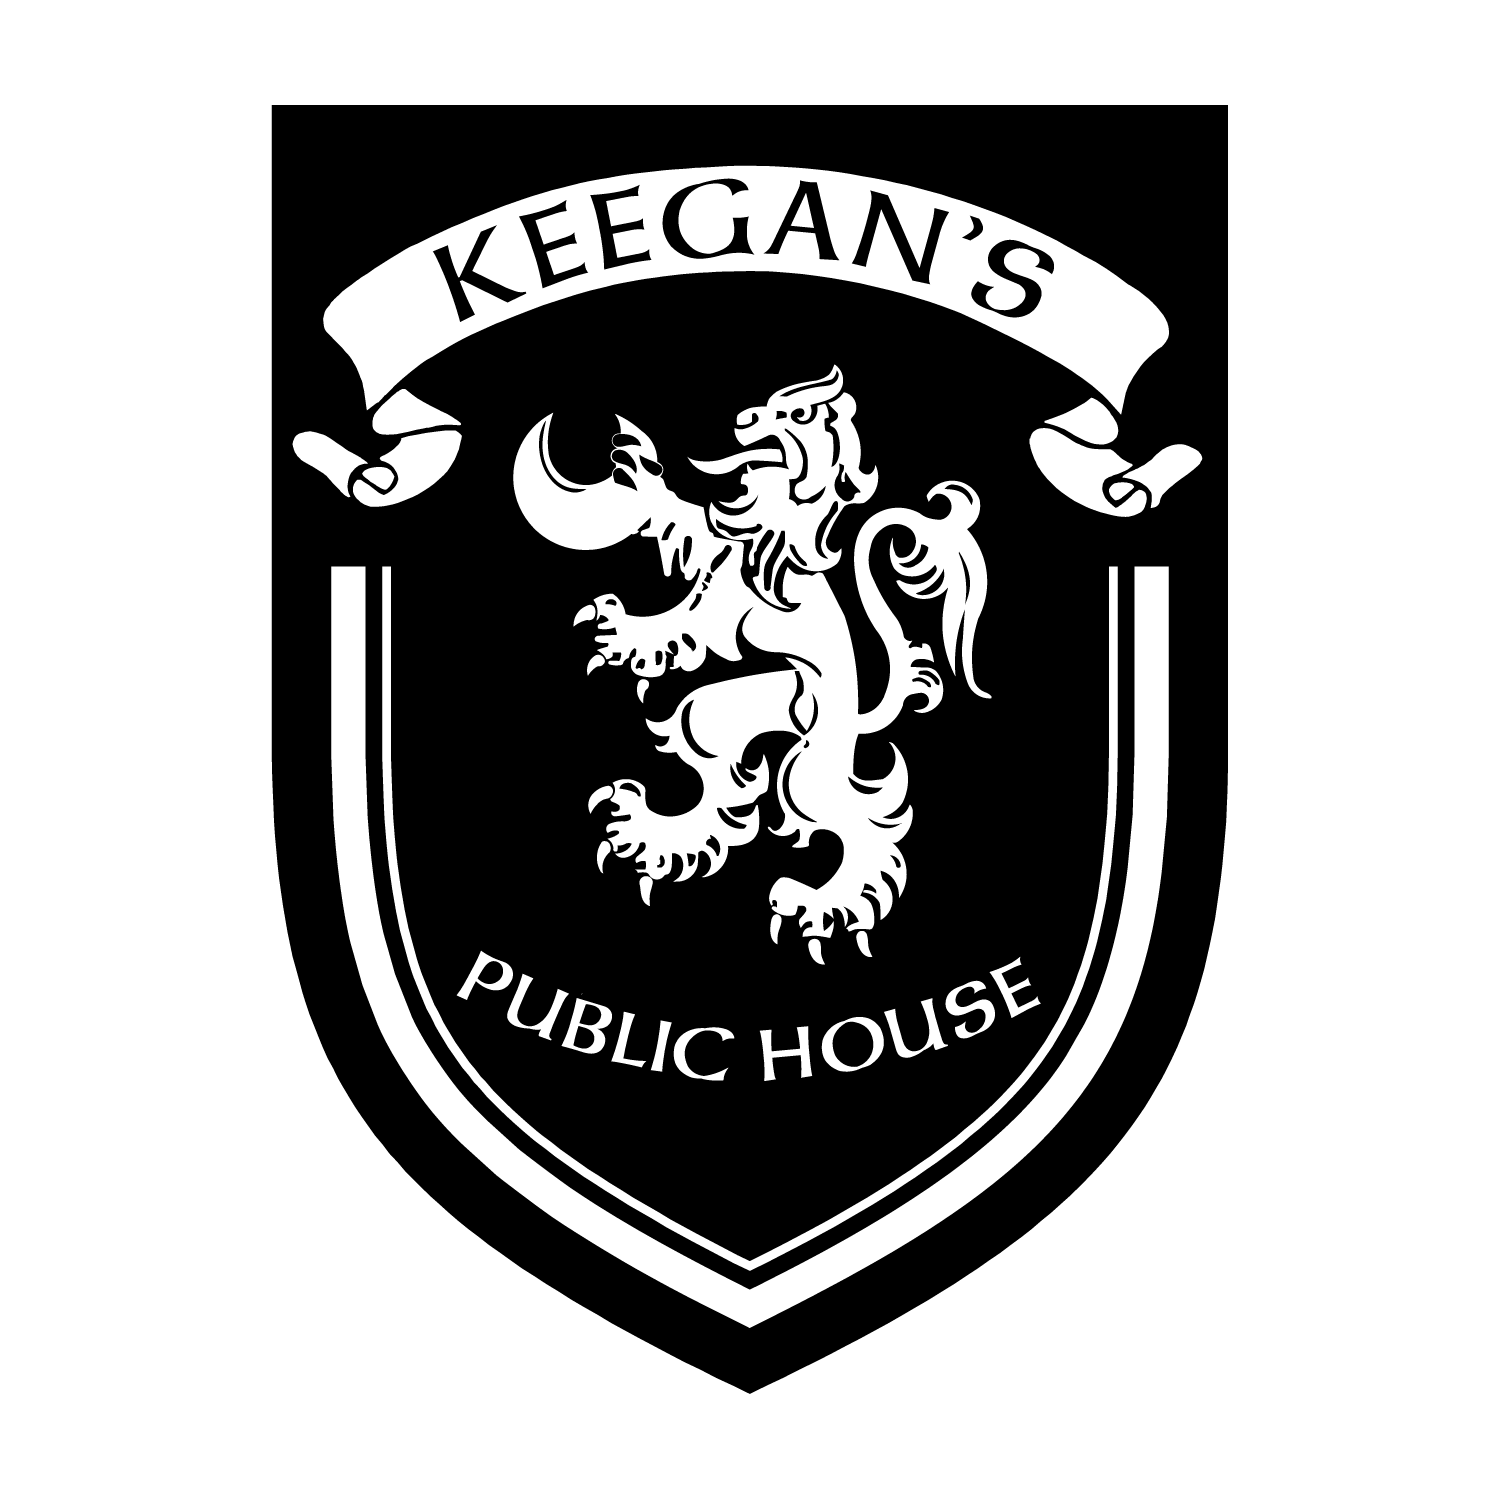 Keegans-Shield-black.png